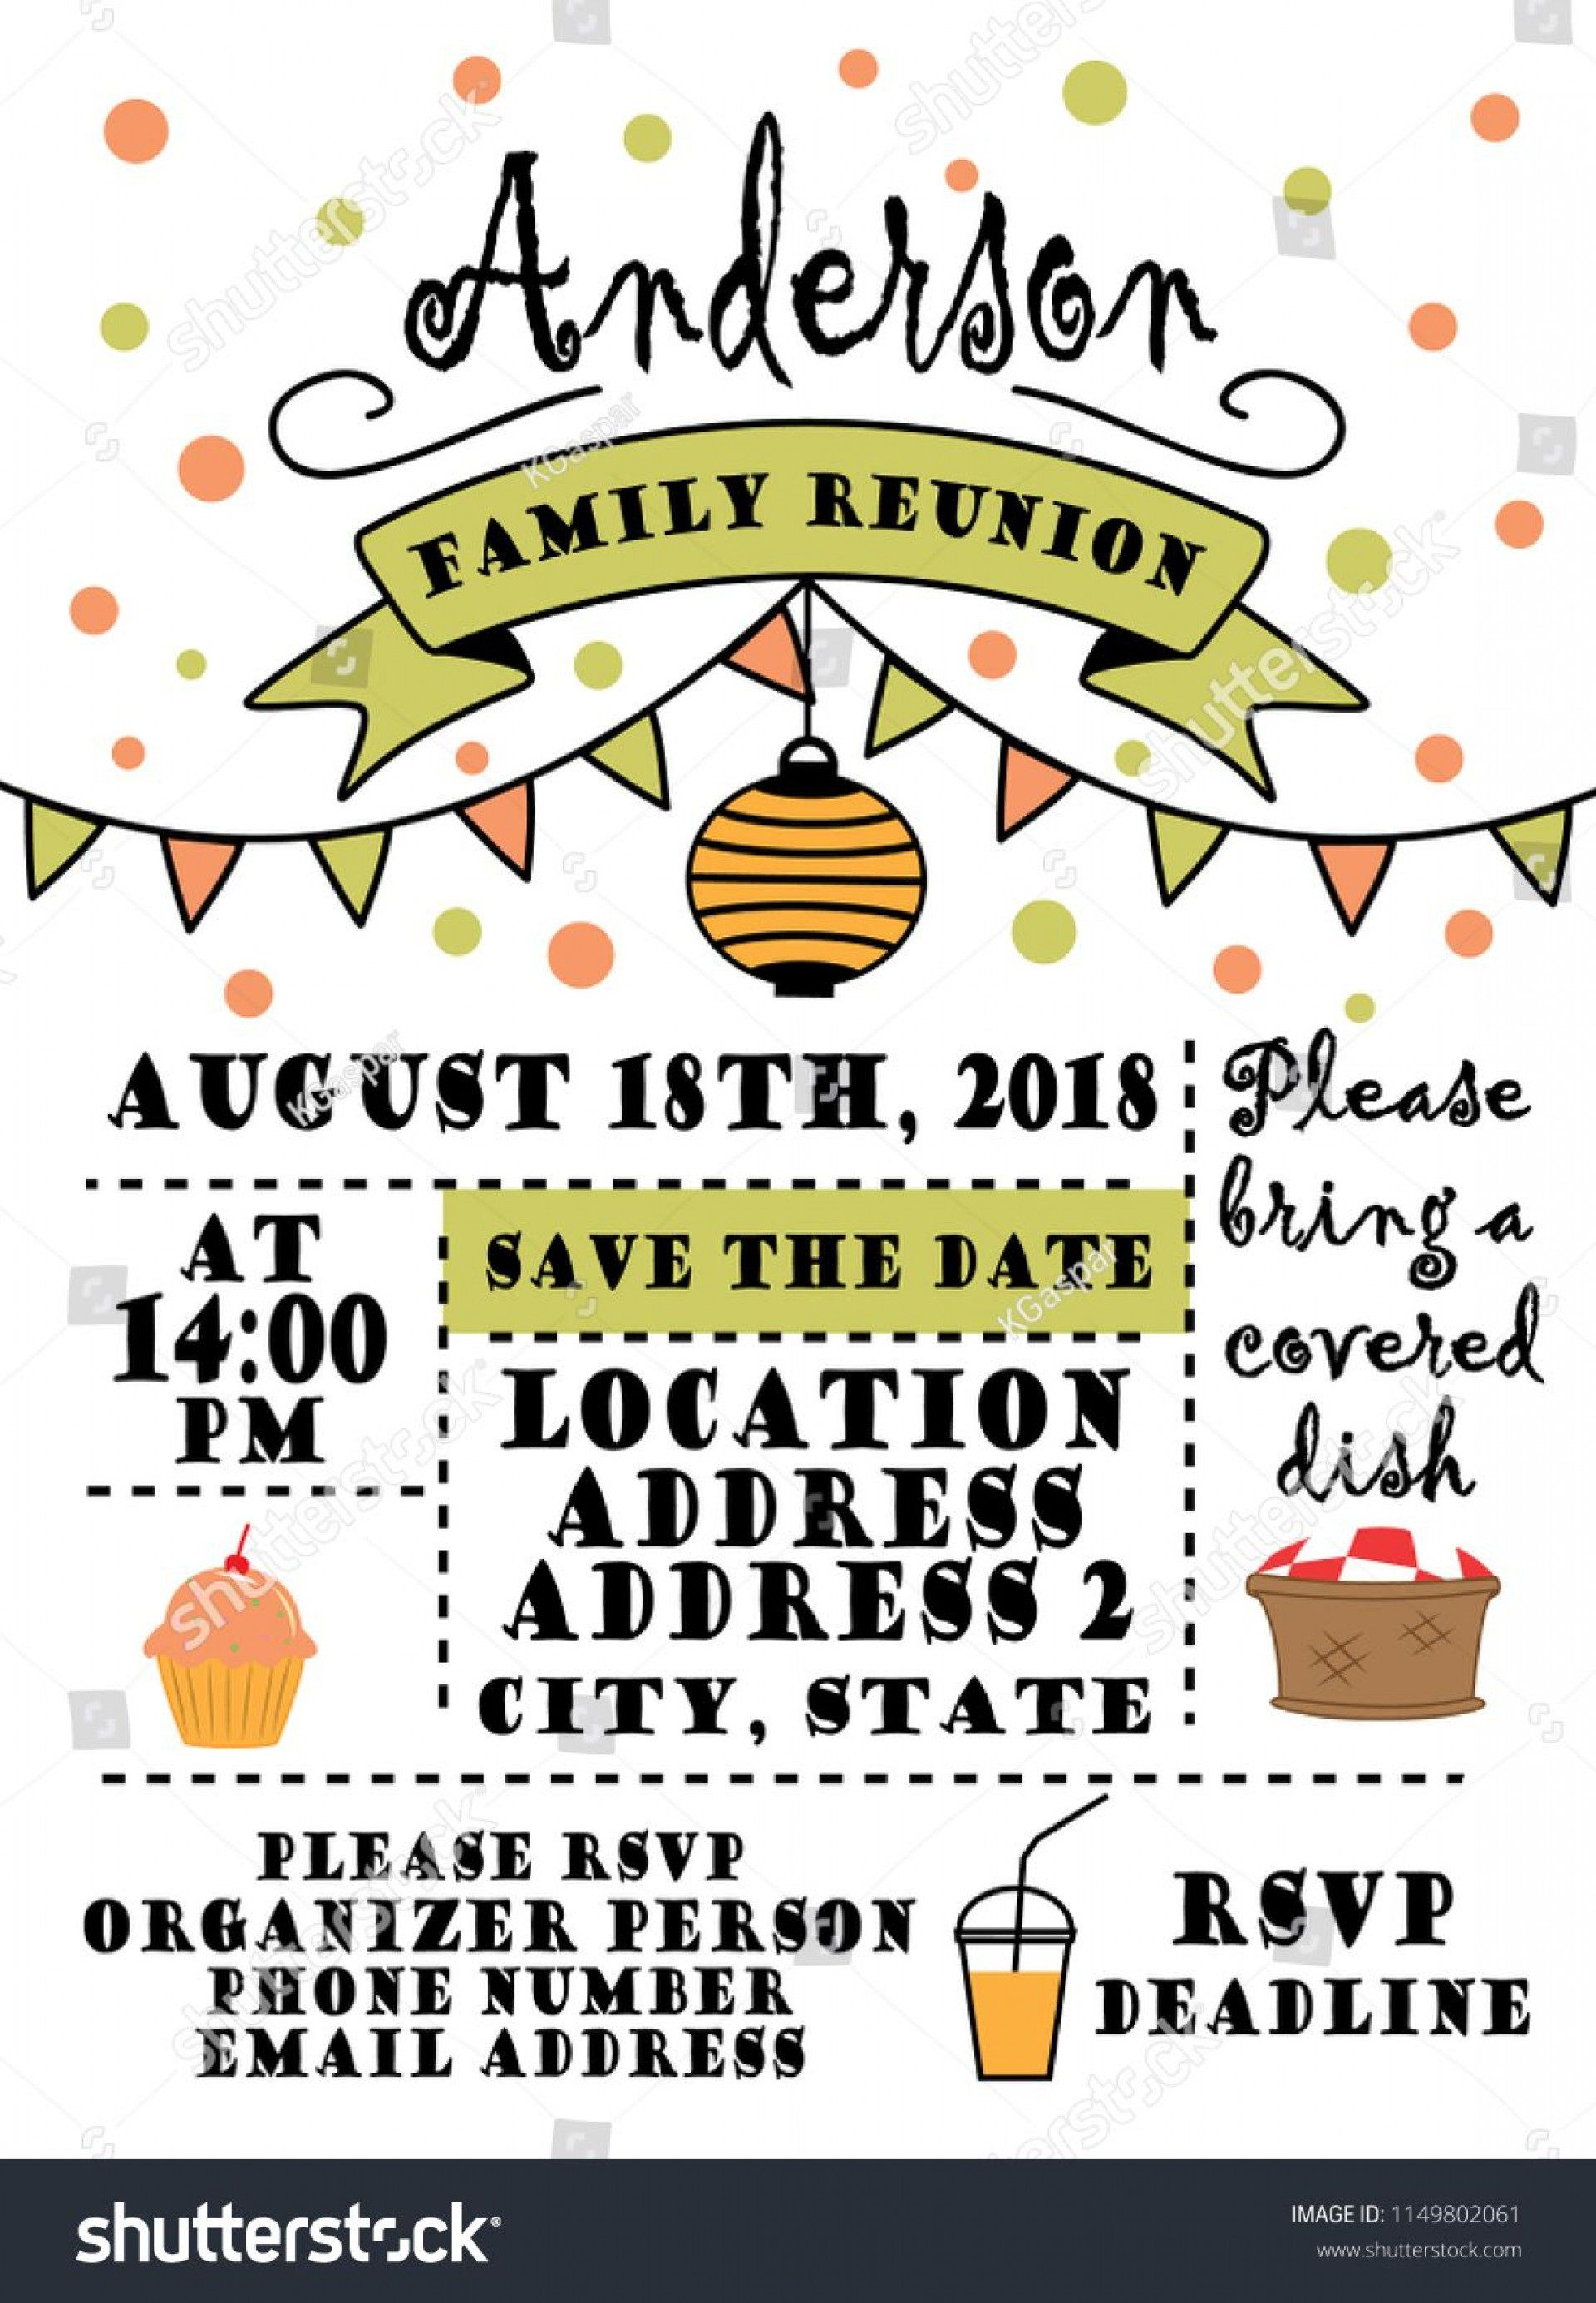 007 Fearsome Free Family Reunion Flyer Template Word High Definition Full